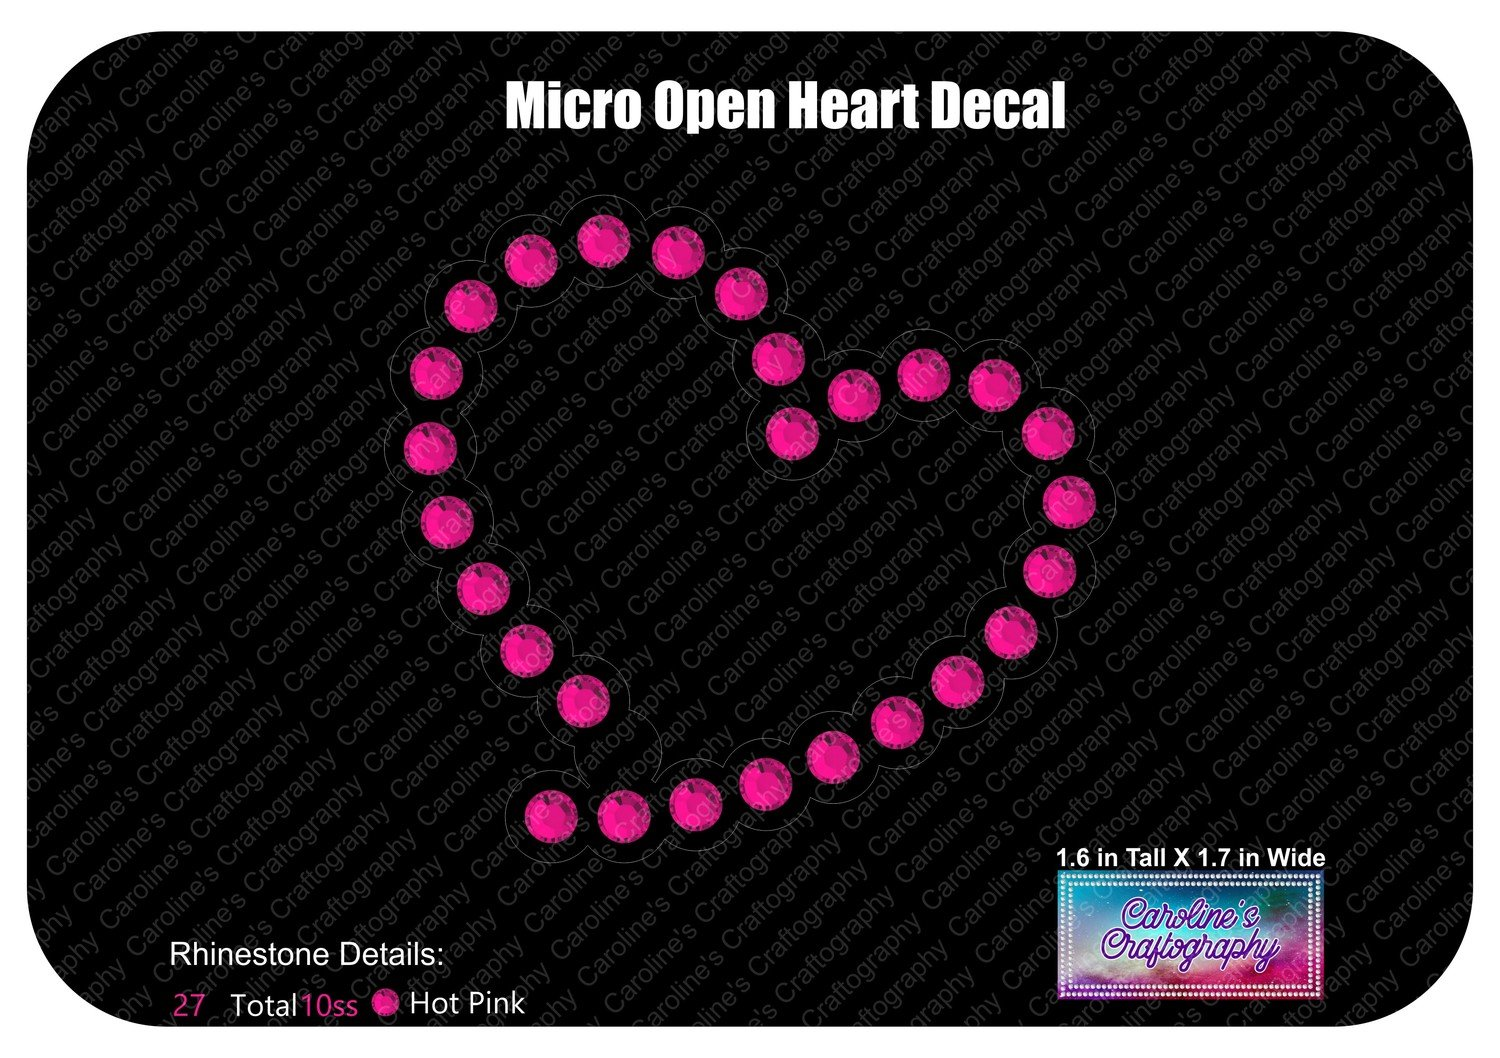 Micro Open Heart Decal Stone